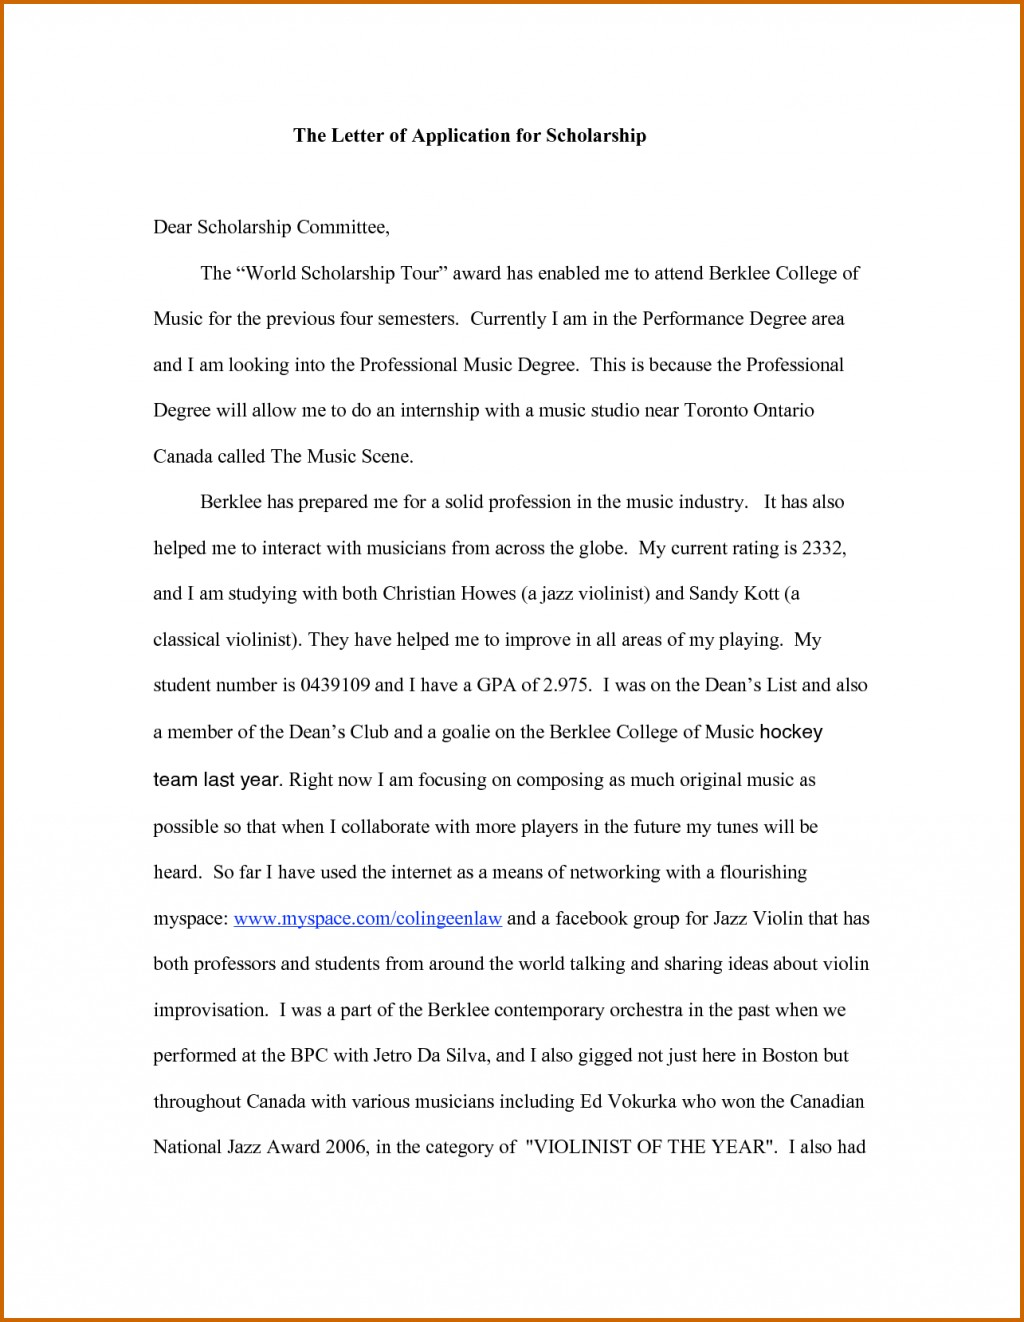 004 Why Do You Deserve This Scholarship Essay Example How To Write Application For Awesome Think Sample A Large